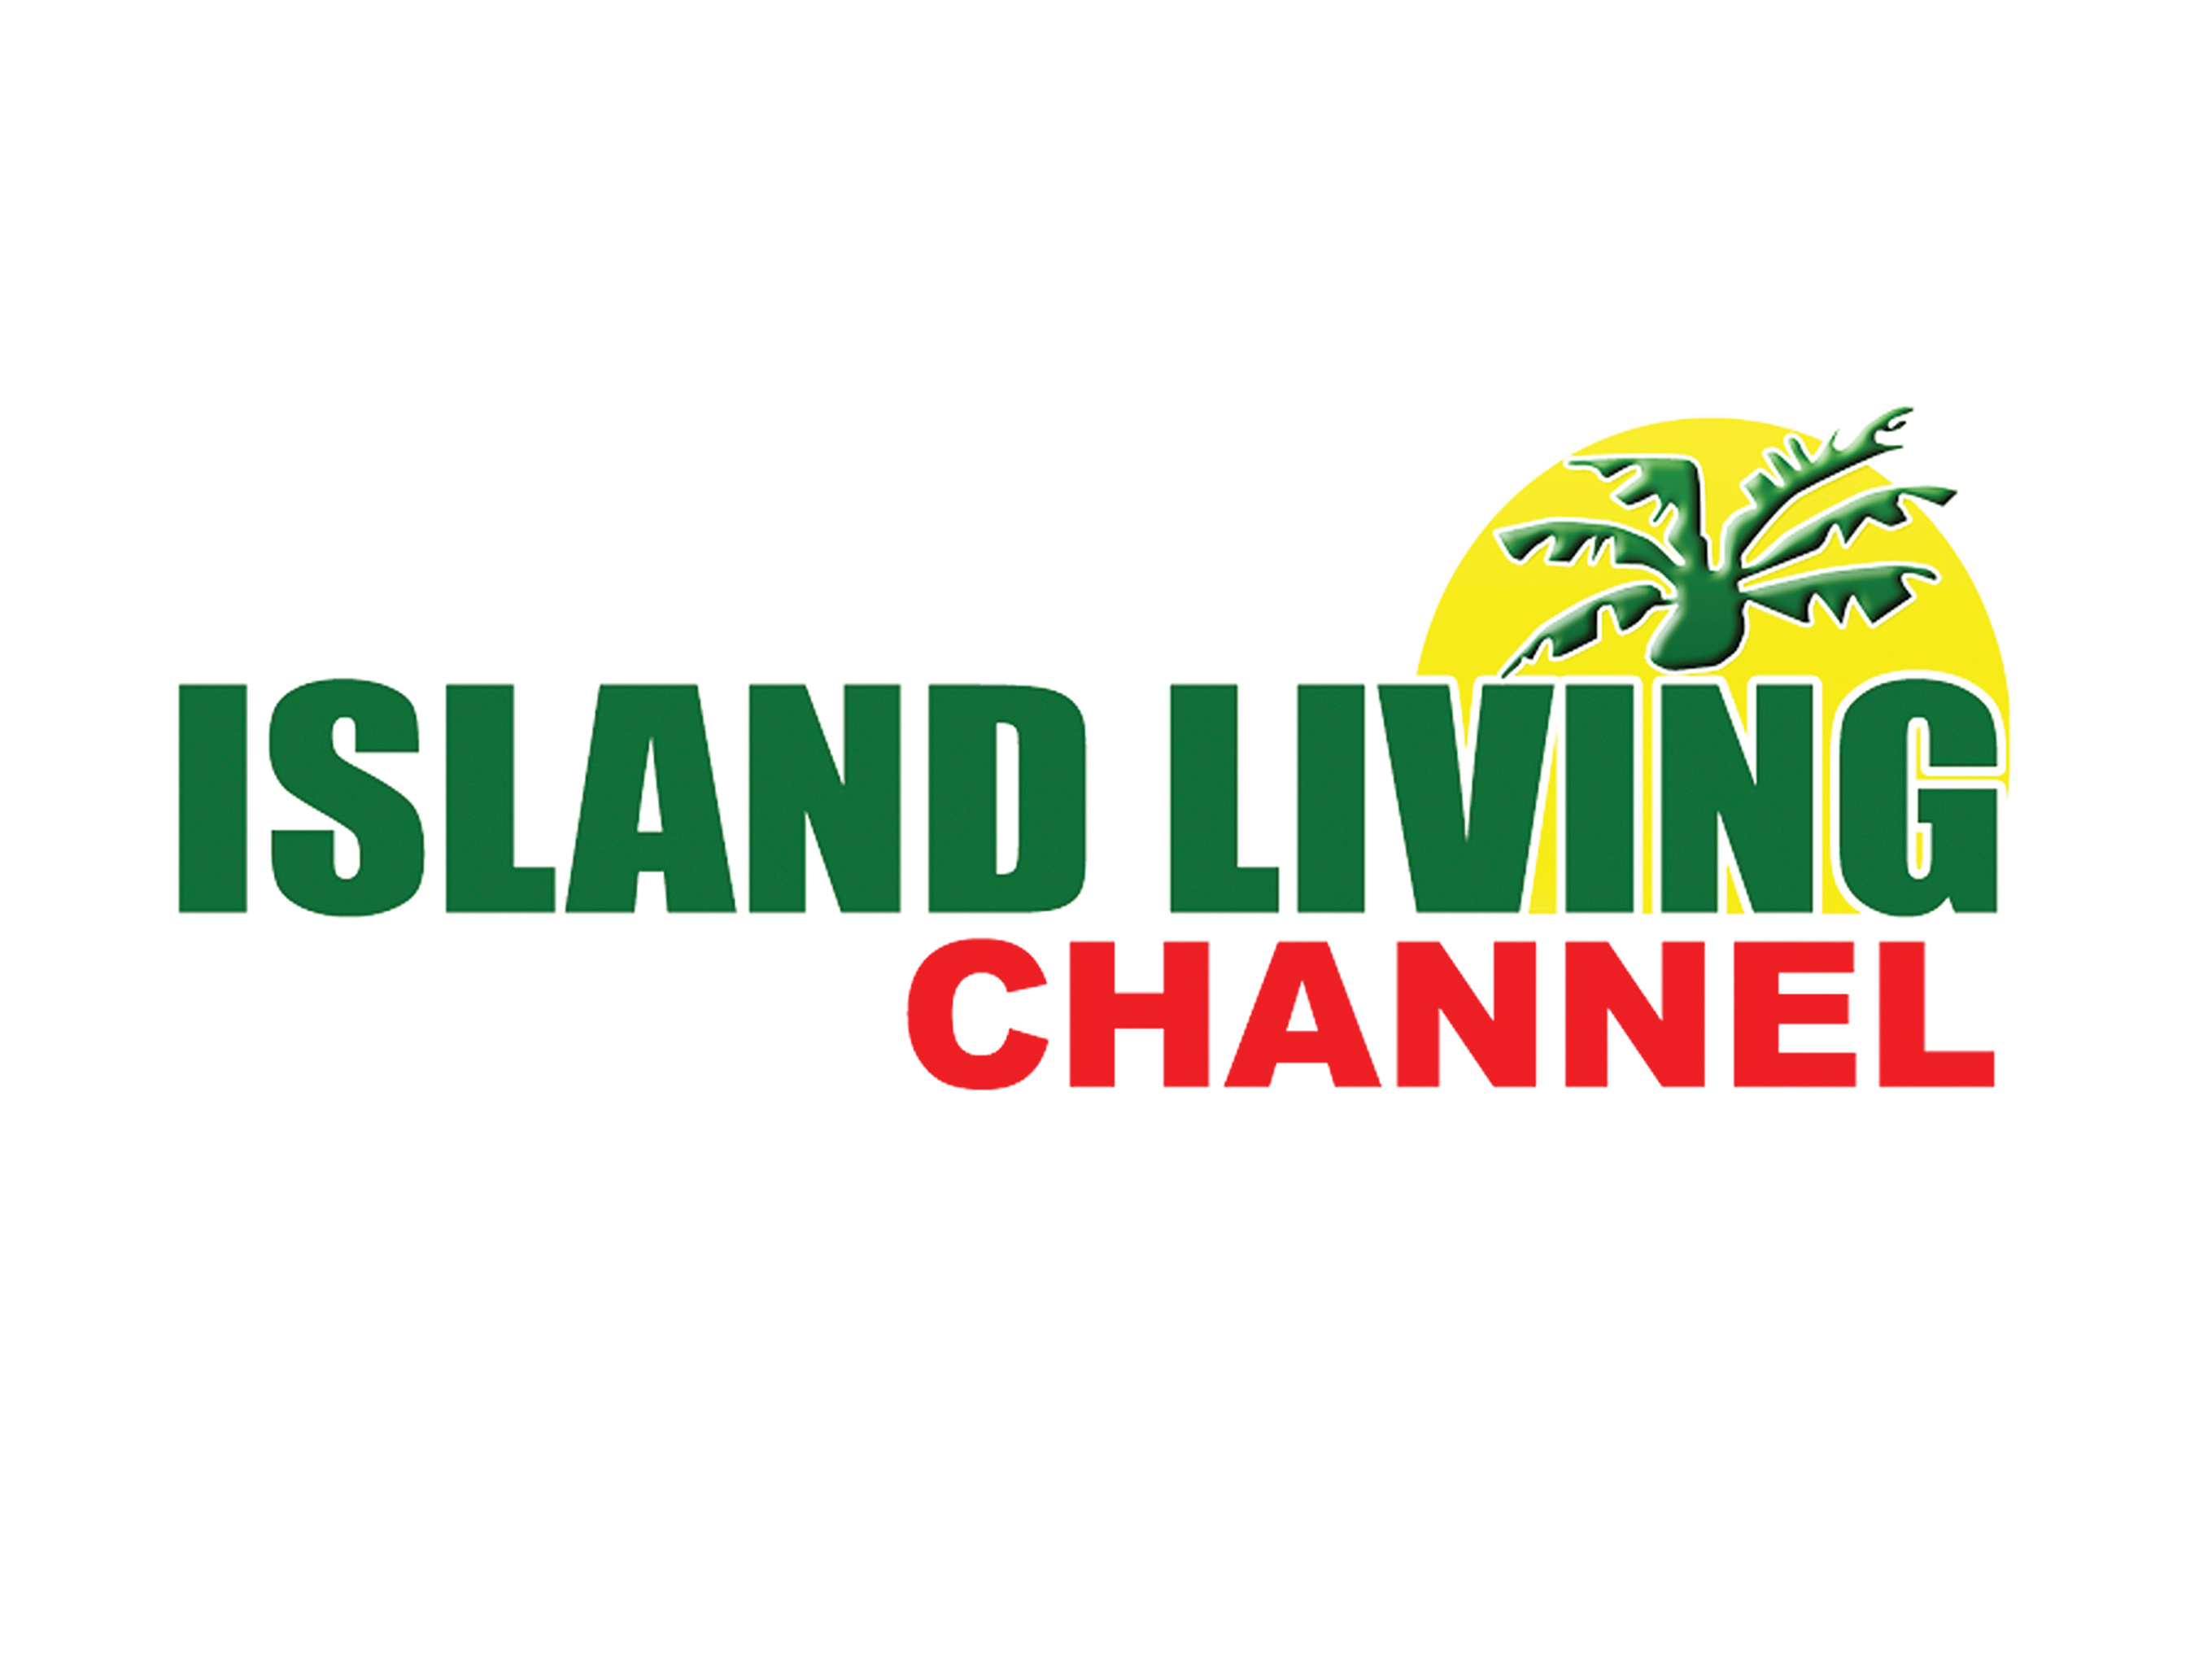 03. ISLAND LIVING CHANNEL